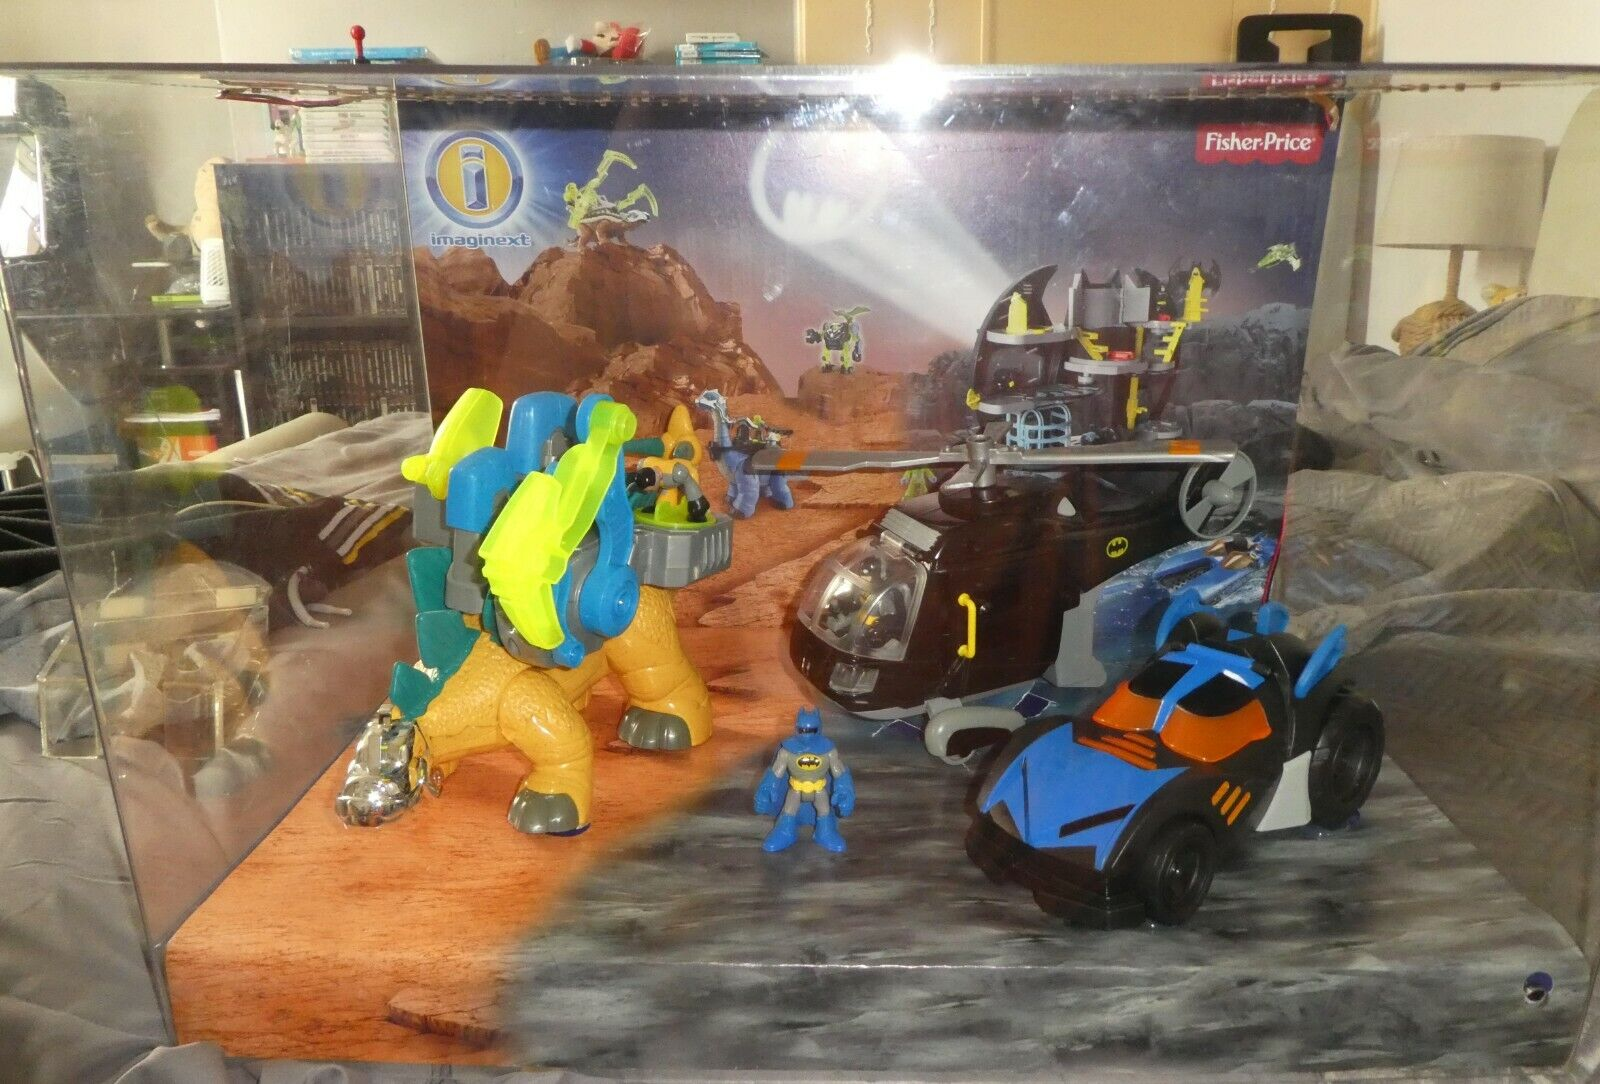 DC Ex DisJugar Promo Imaginext Fisher Batman Batmobile luz movimiento hablando